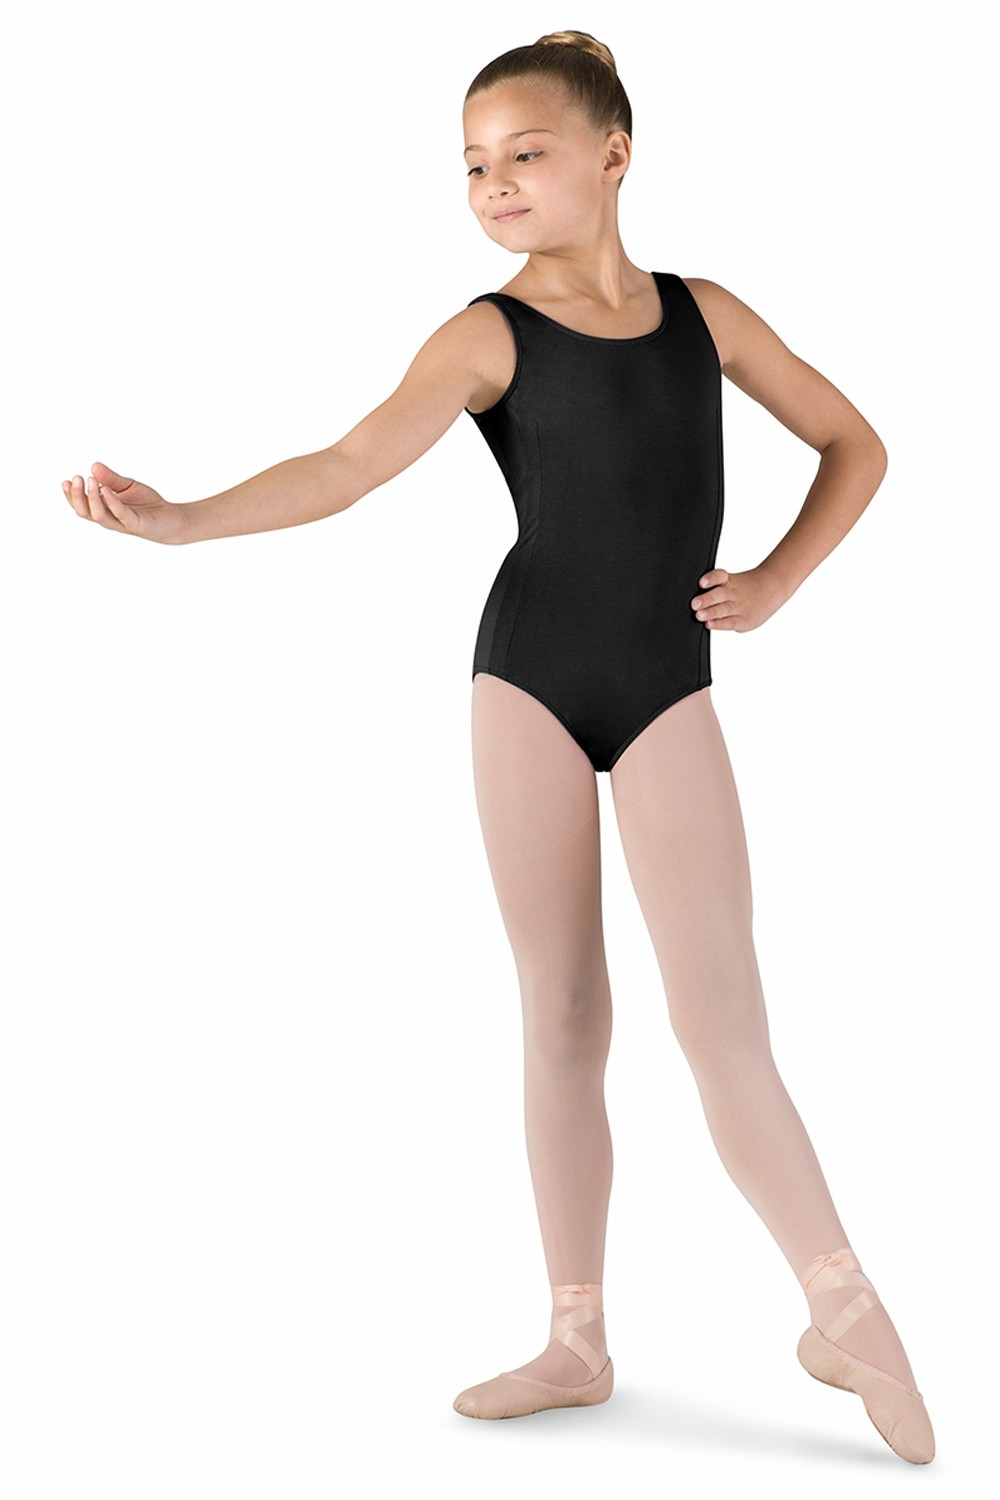 Chasse Children's Dance Leotards